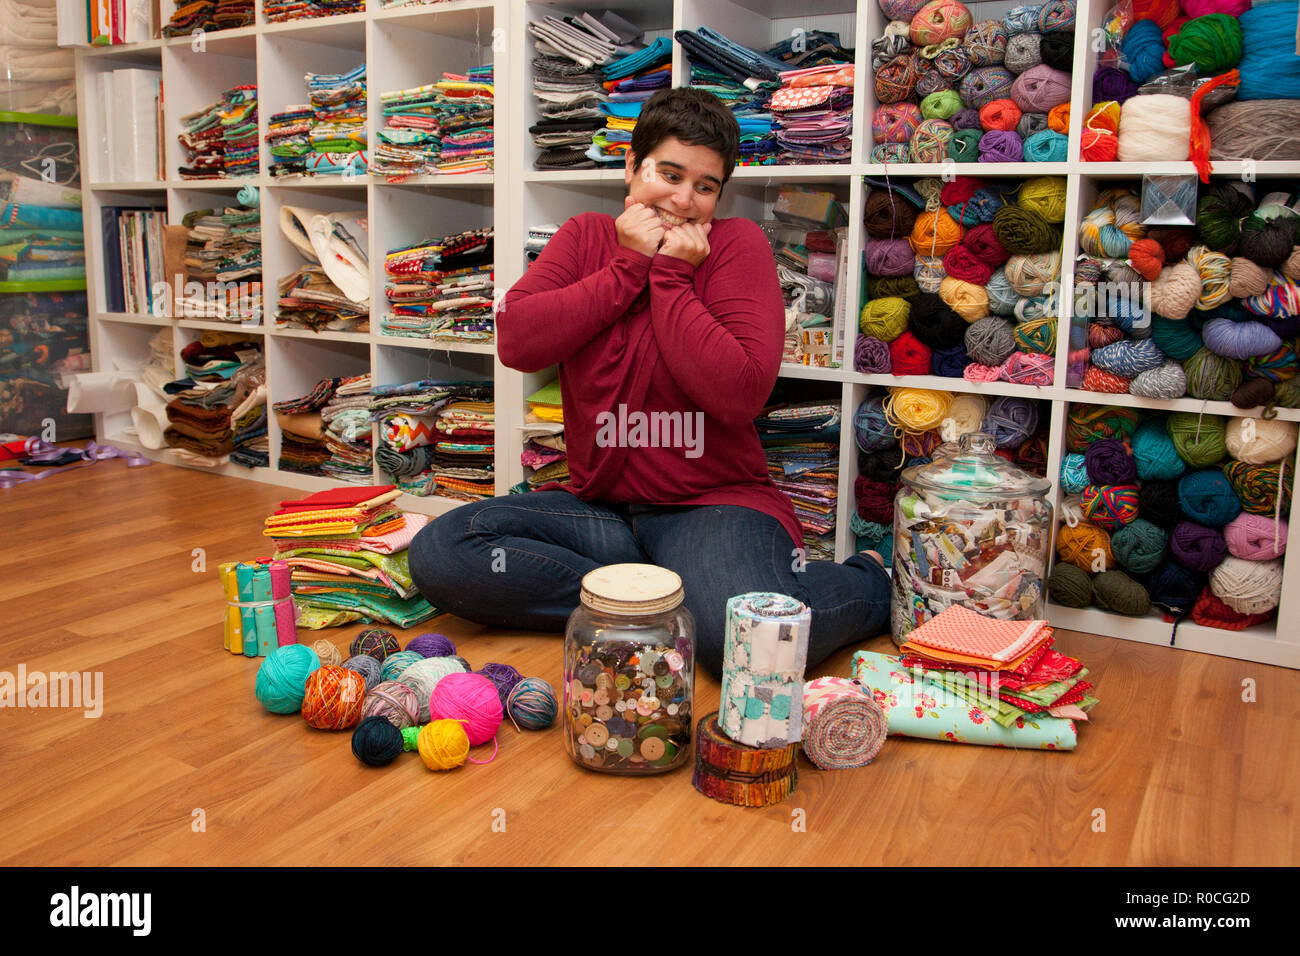 Person surrounded by fabric, yarn, looking gleeful and excited to create - Stock Image